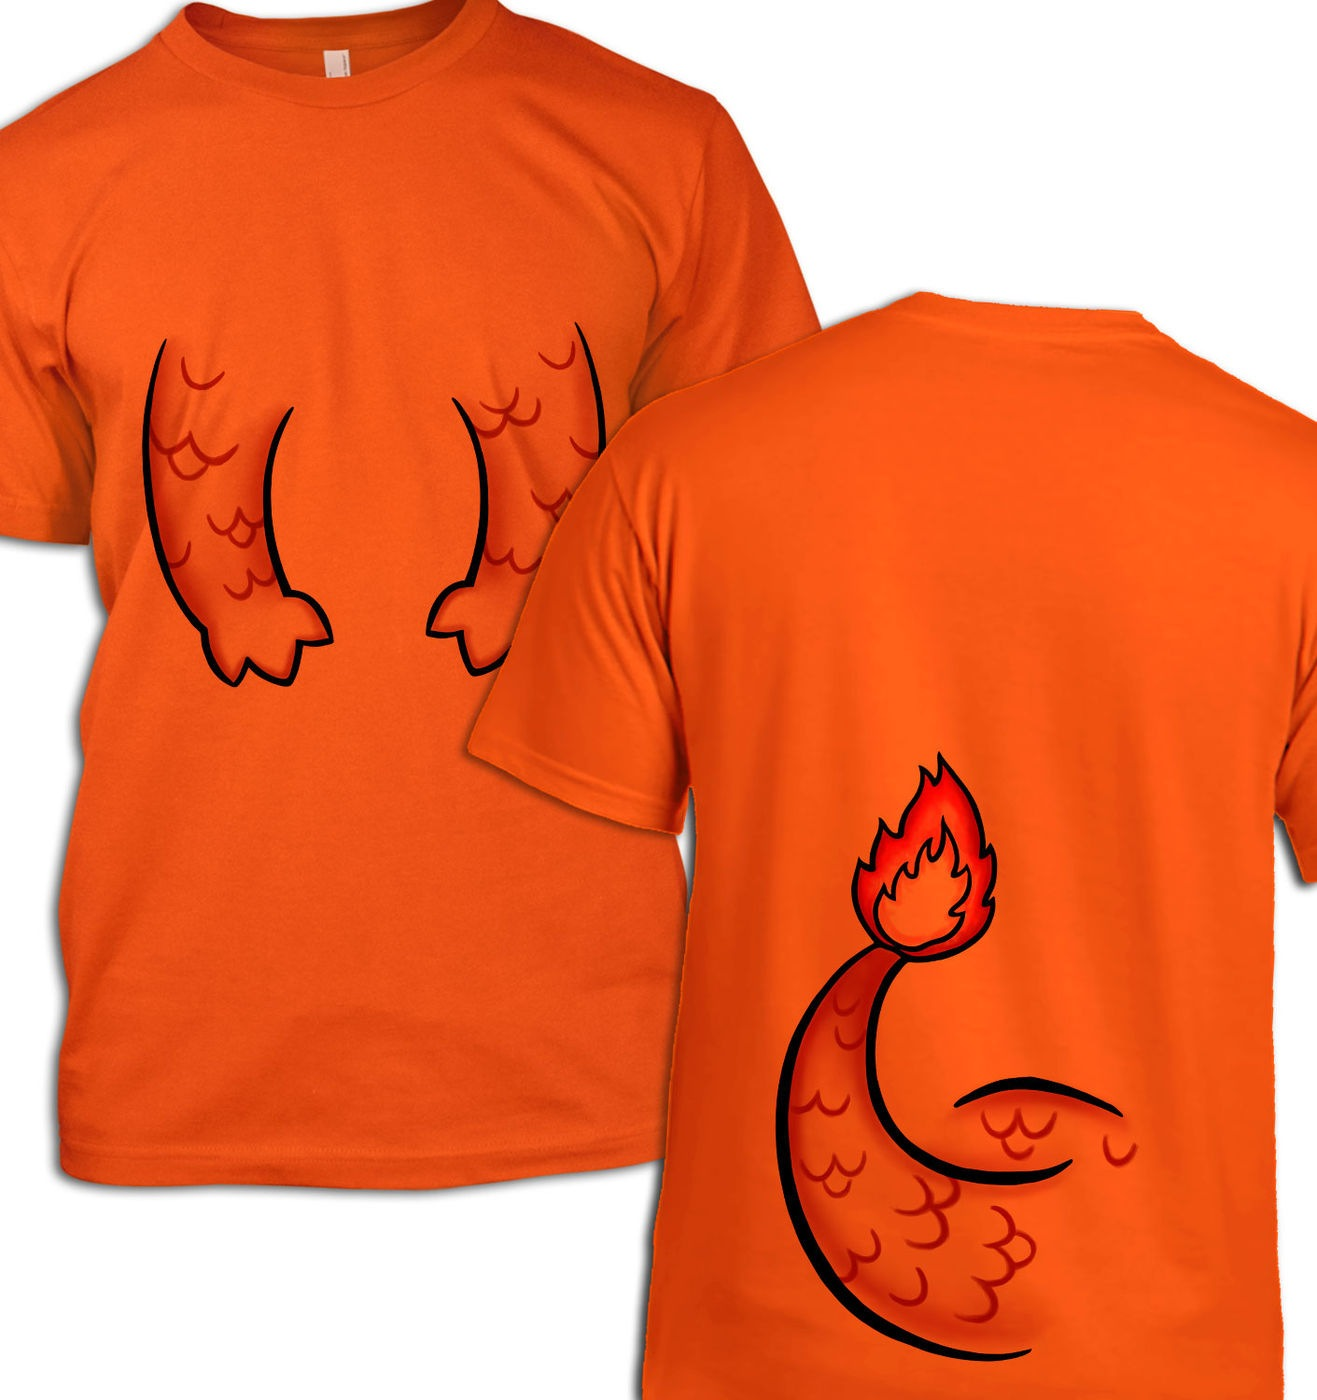 Fire Pocket Monster Costume t-shirt by Something Geeky